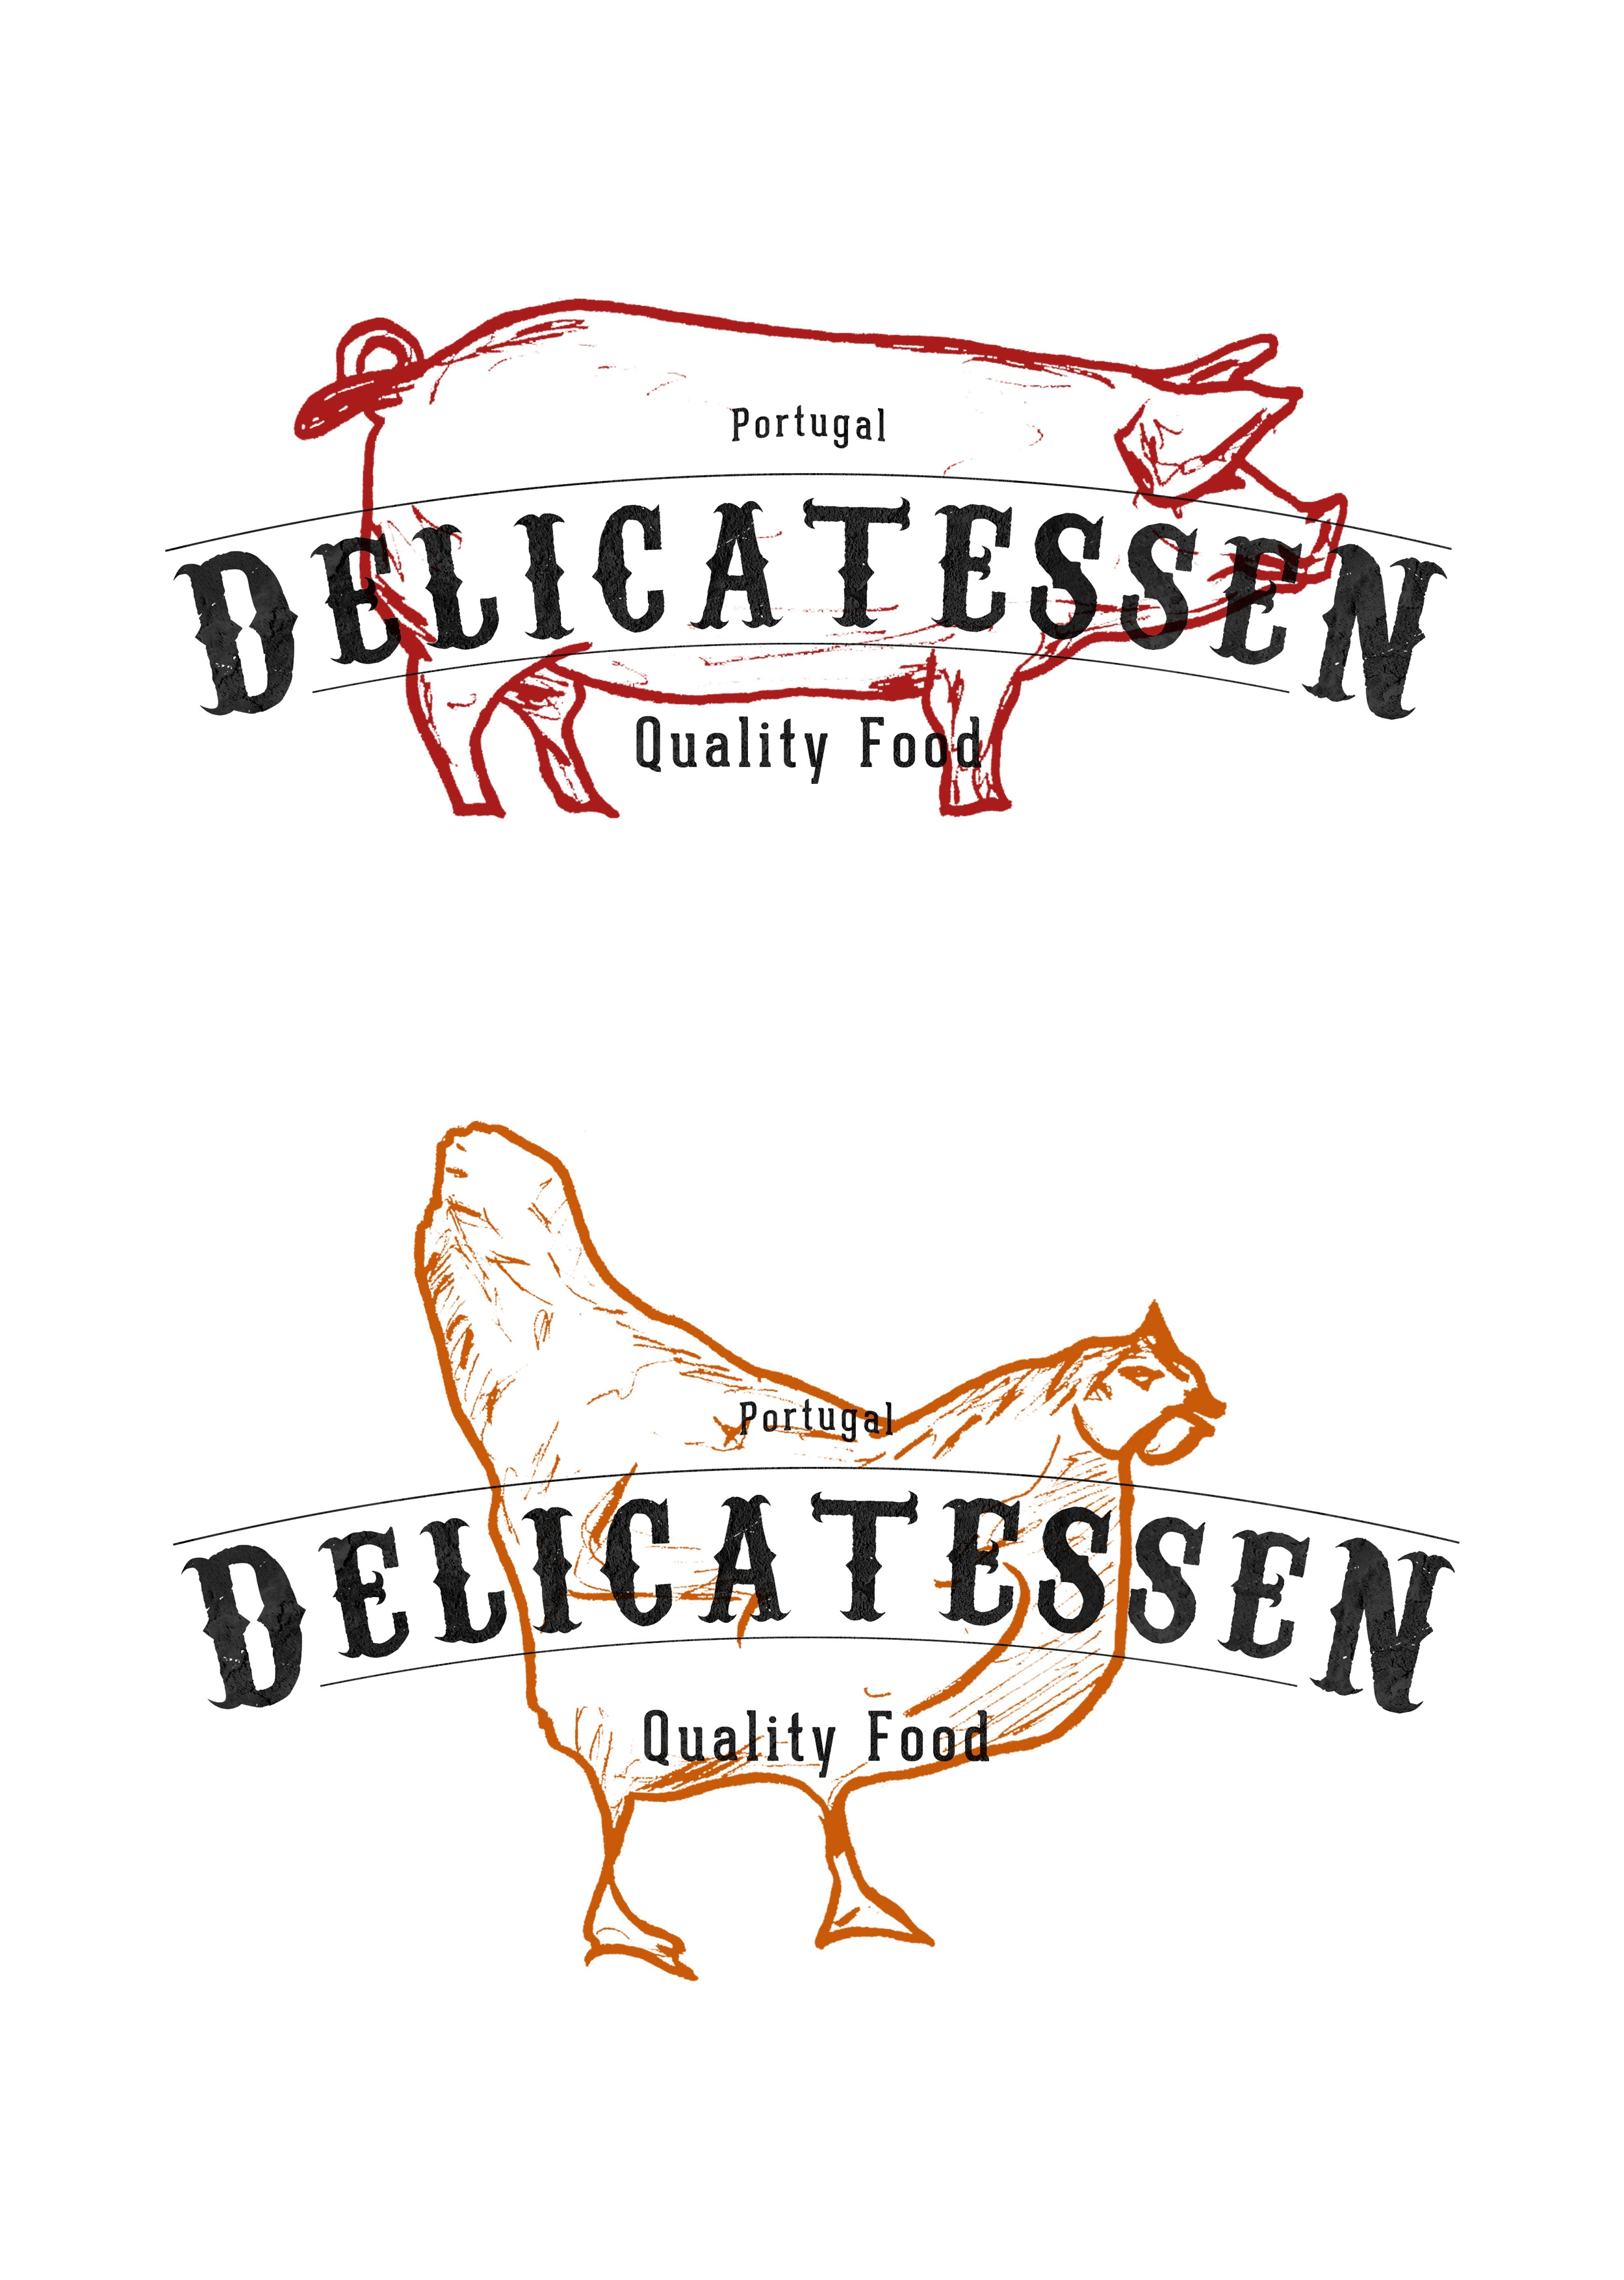 Delicatessen animals simple illustration